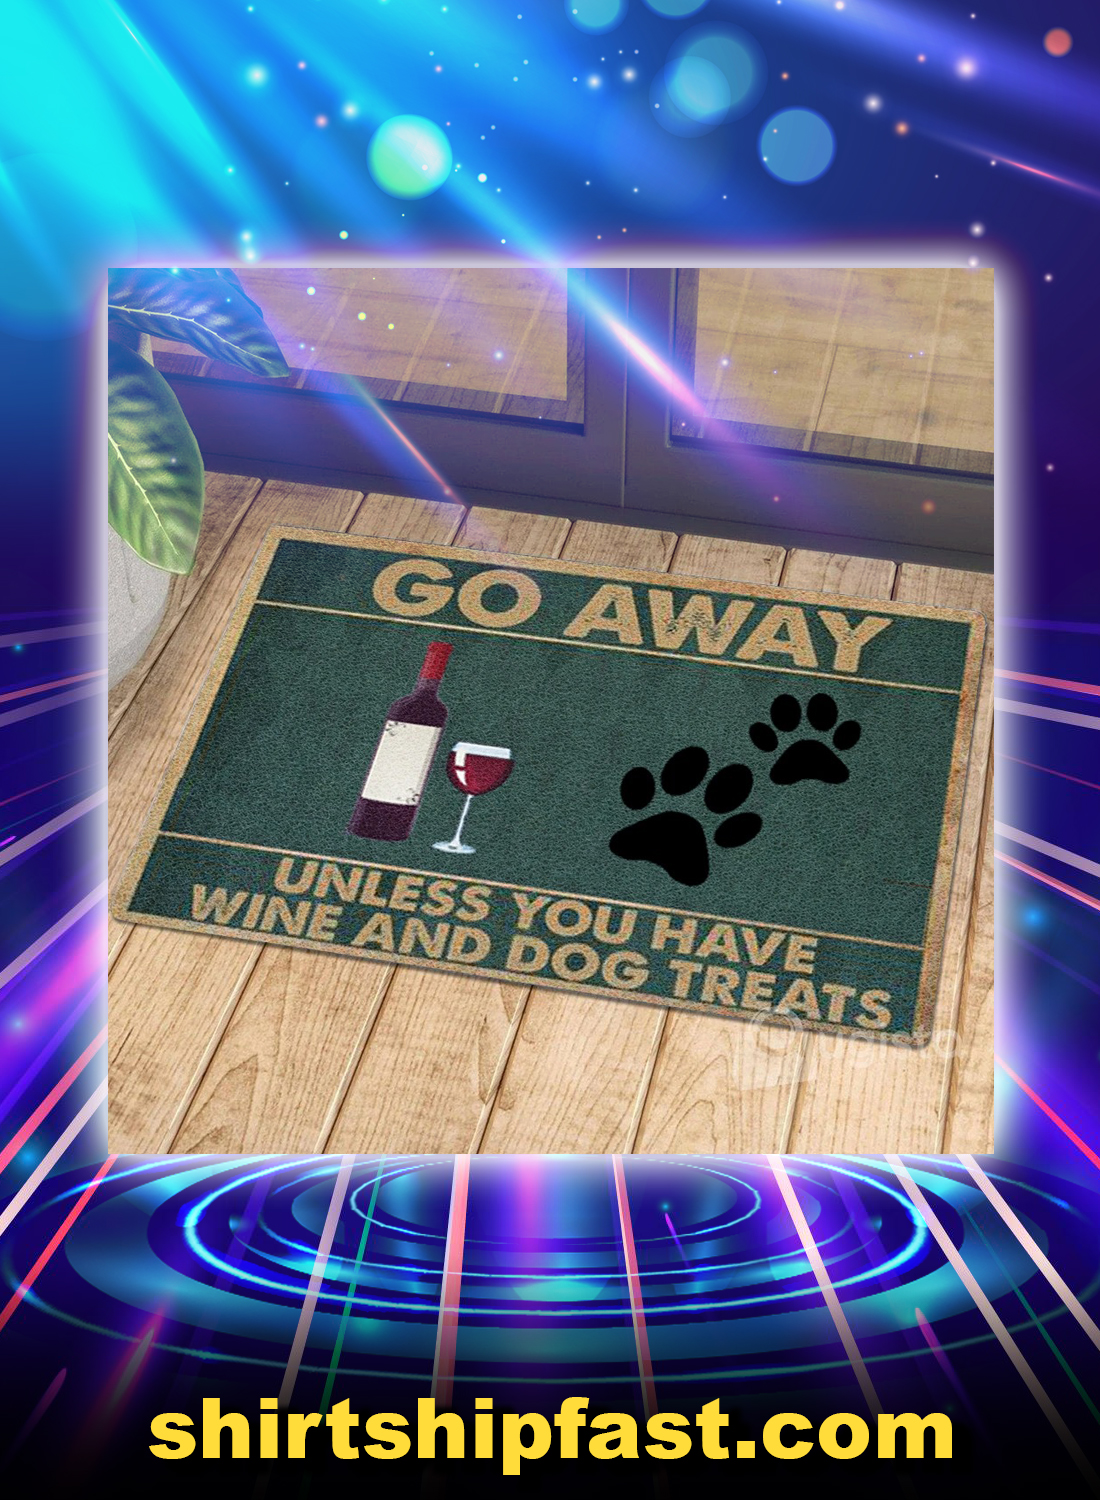 Go away unless you have wine and dog treats doormat - Picture 1